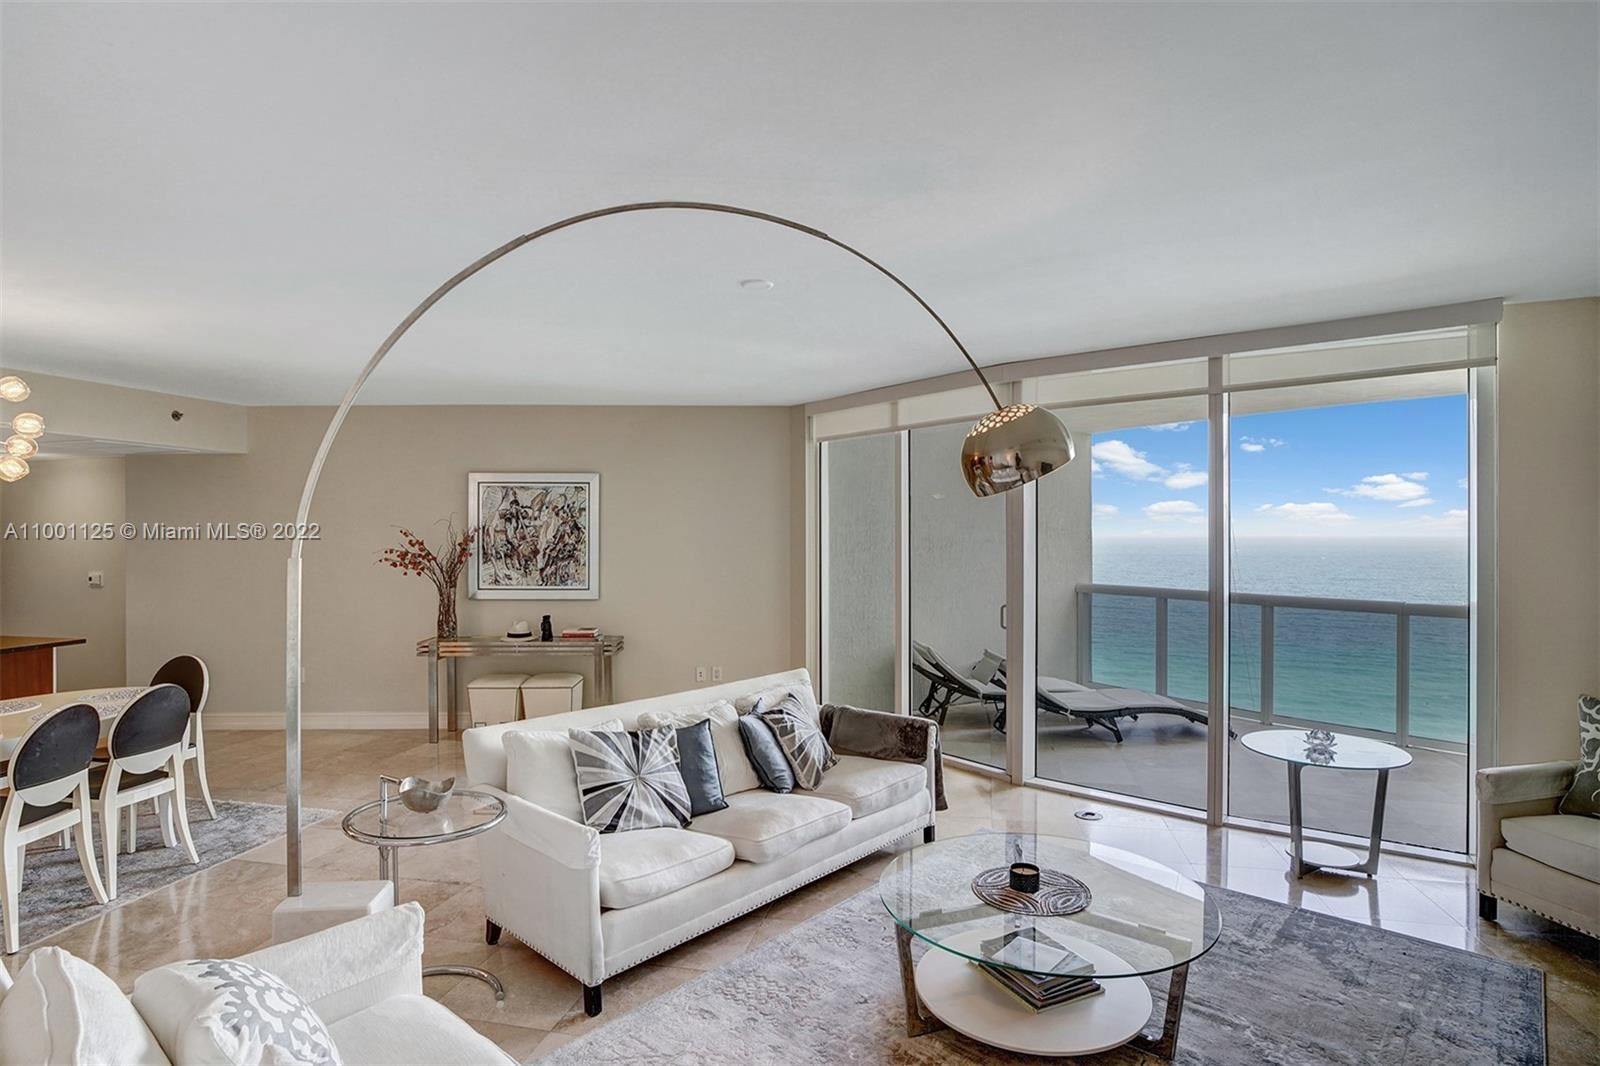 17201 Collins Ave #1604, Sunny Isles, FL 33160 - #: A11001125